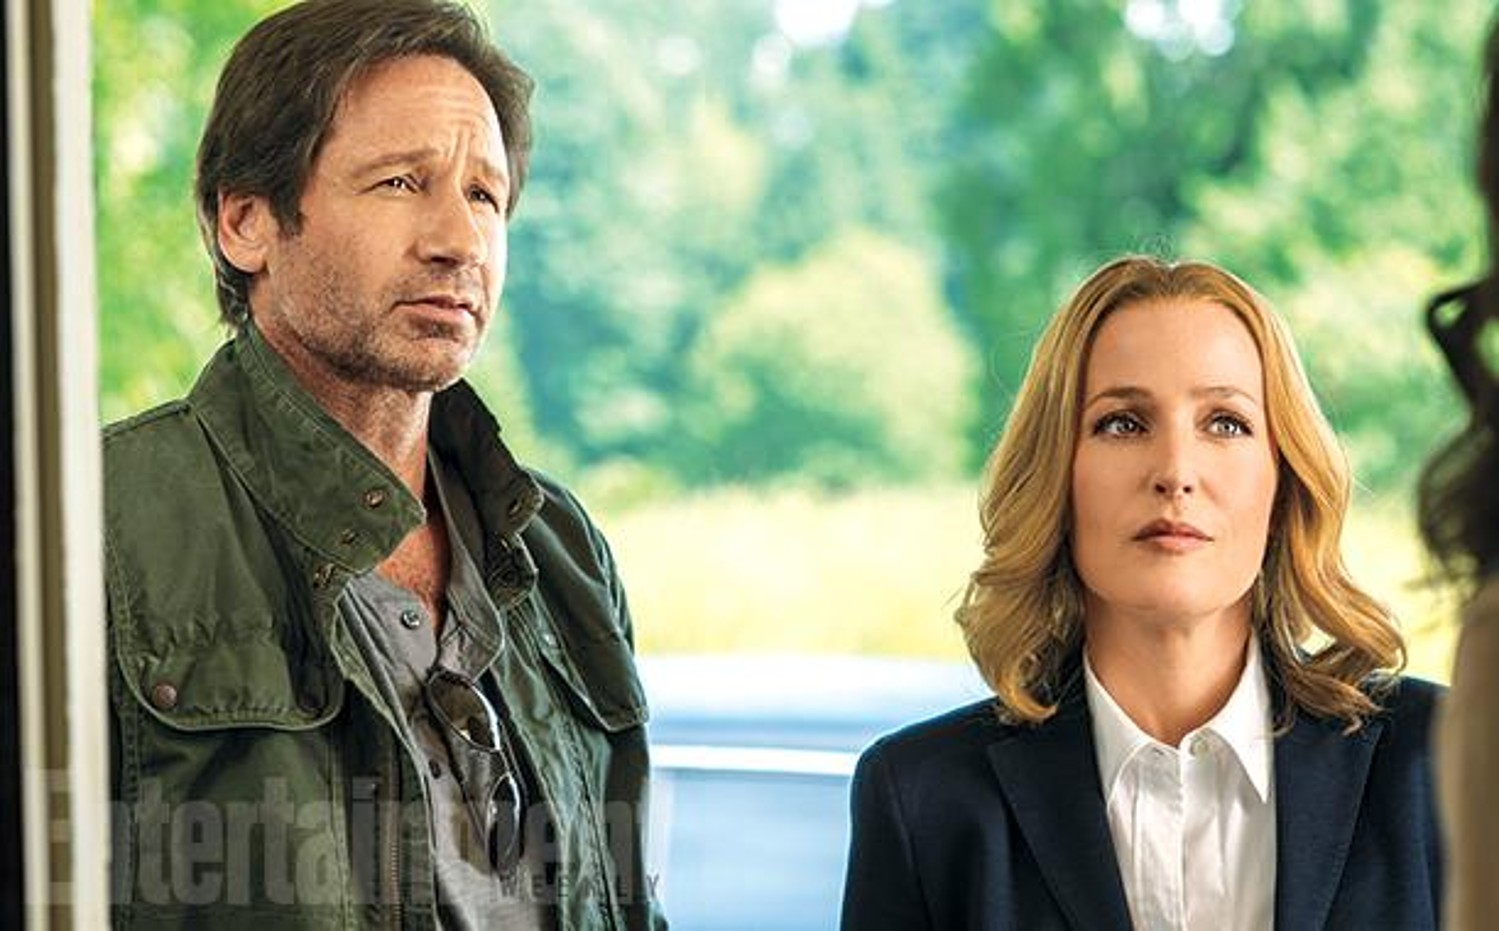 David Duchovny and Gillian Anderson in X-Files miniseries revival